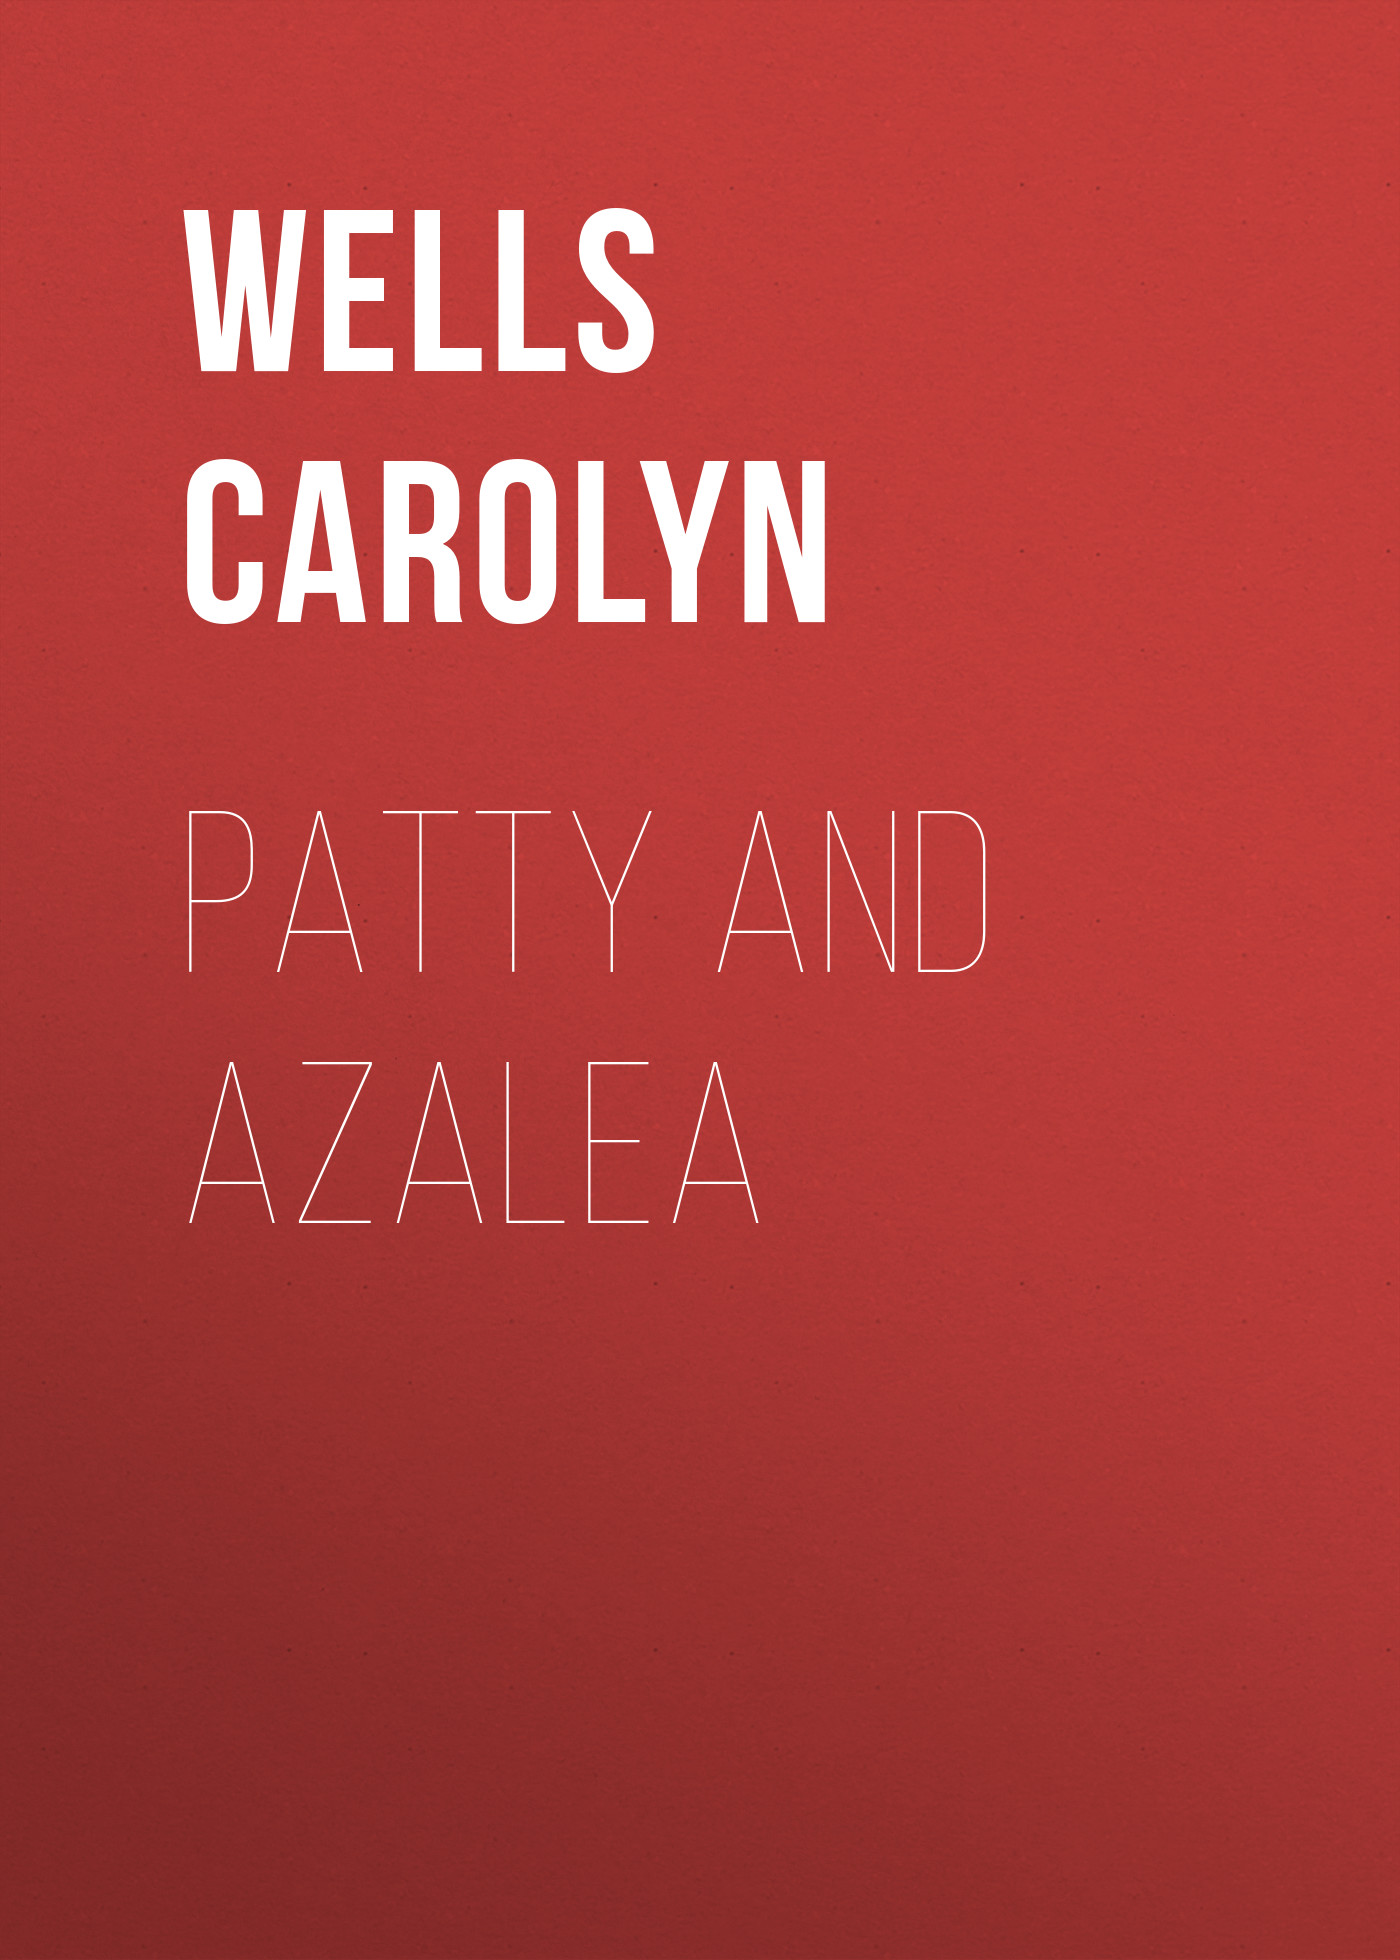 Patty and Azalea